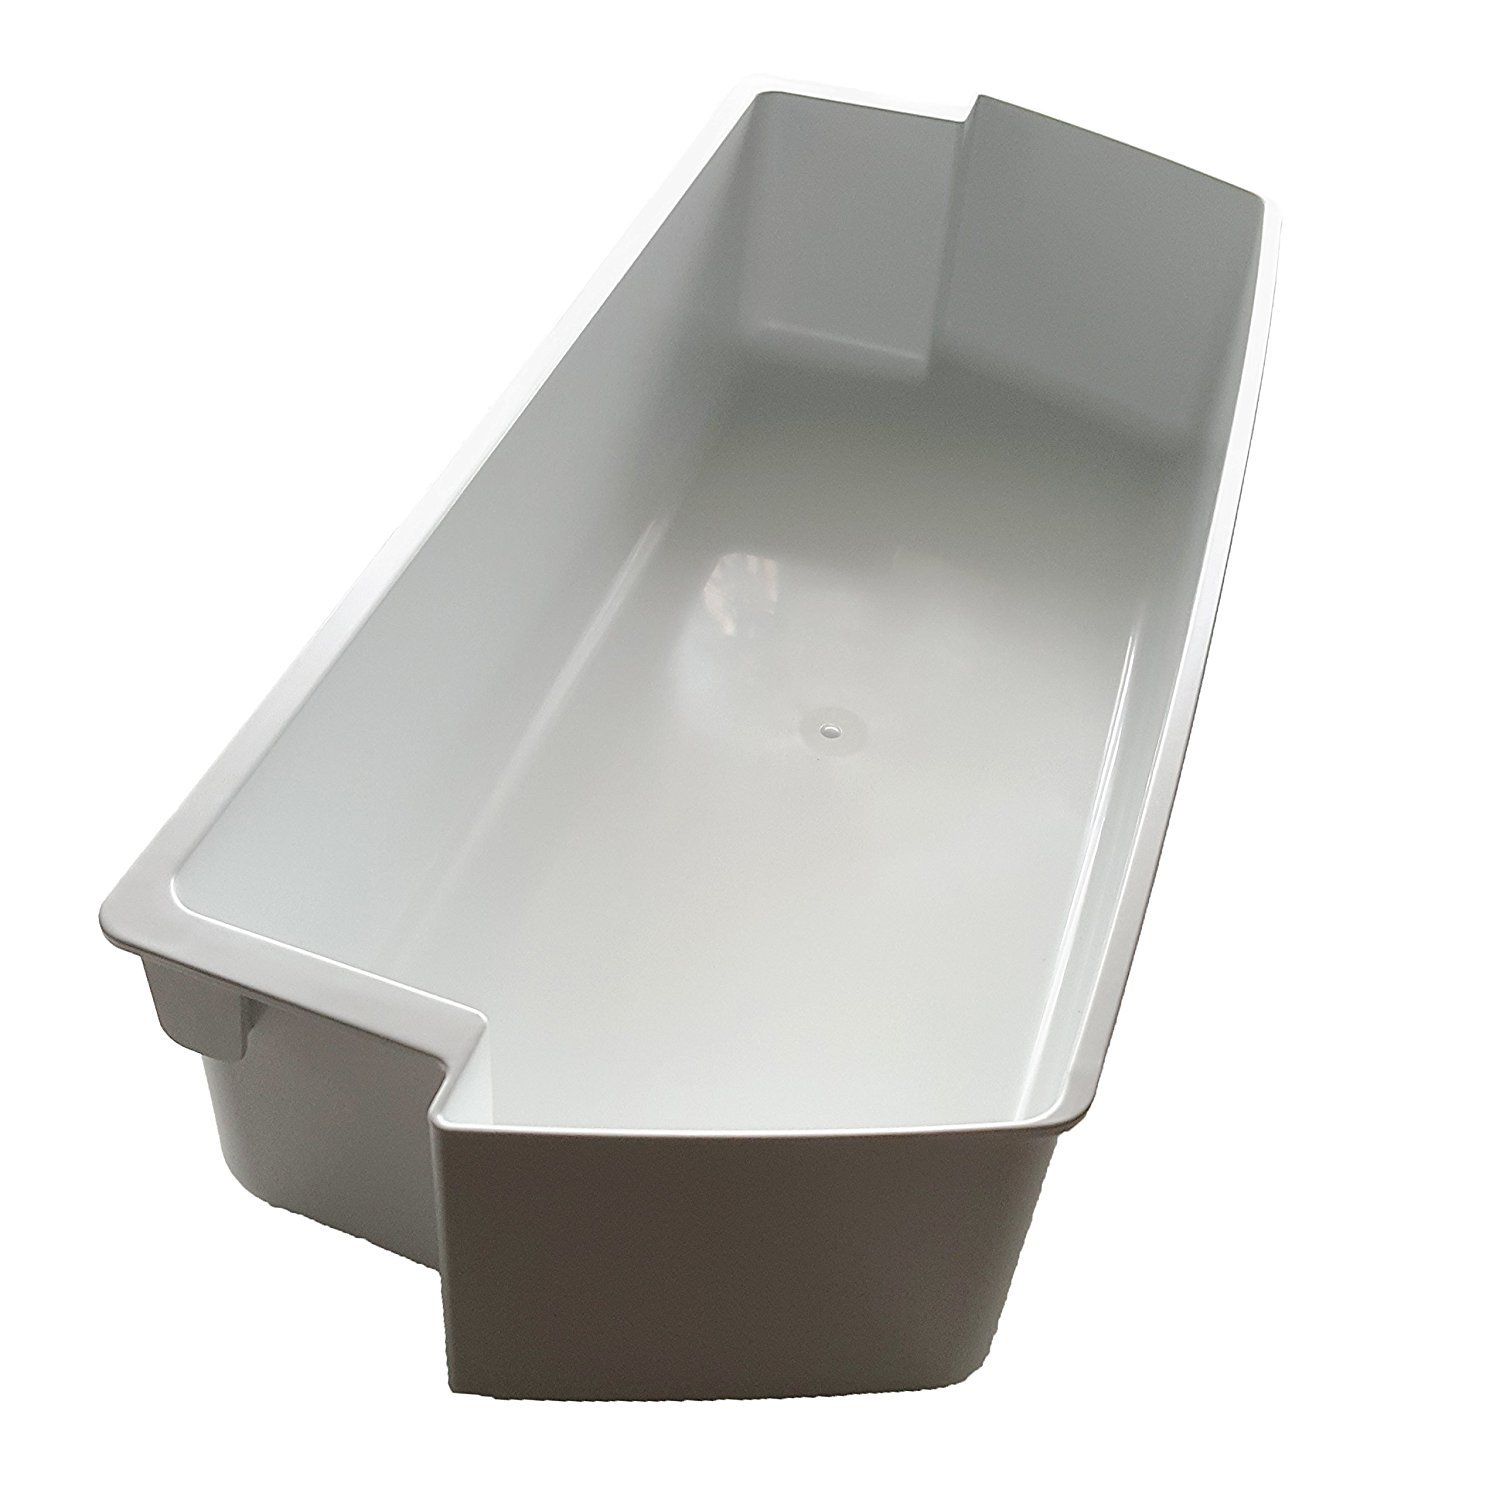 2187172 Door Shelf Bin for Whirlpool Refrigerator